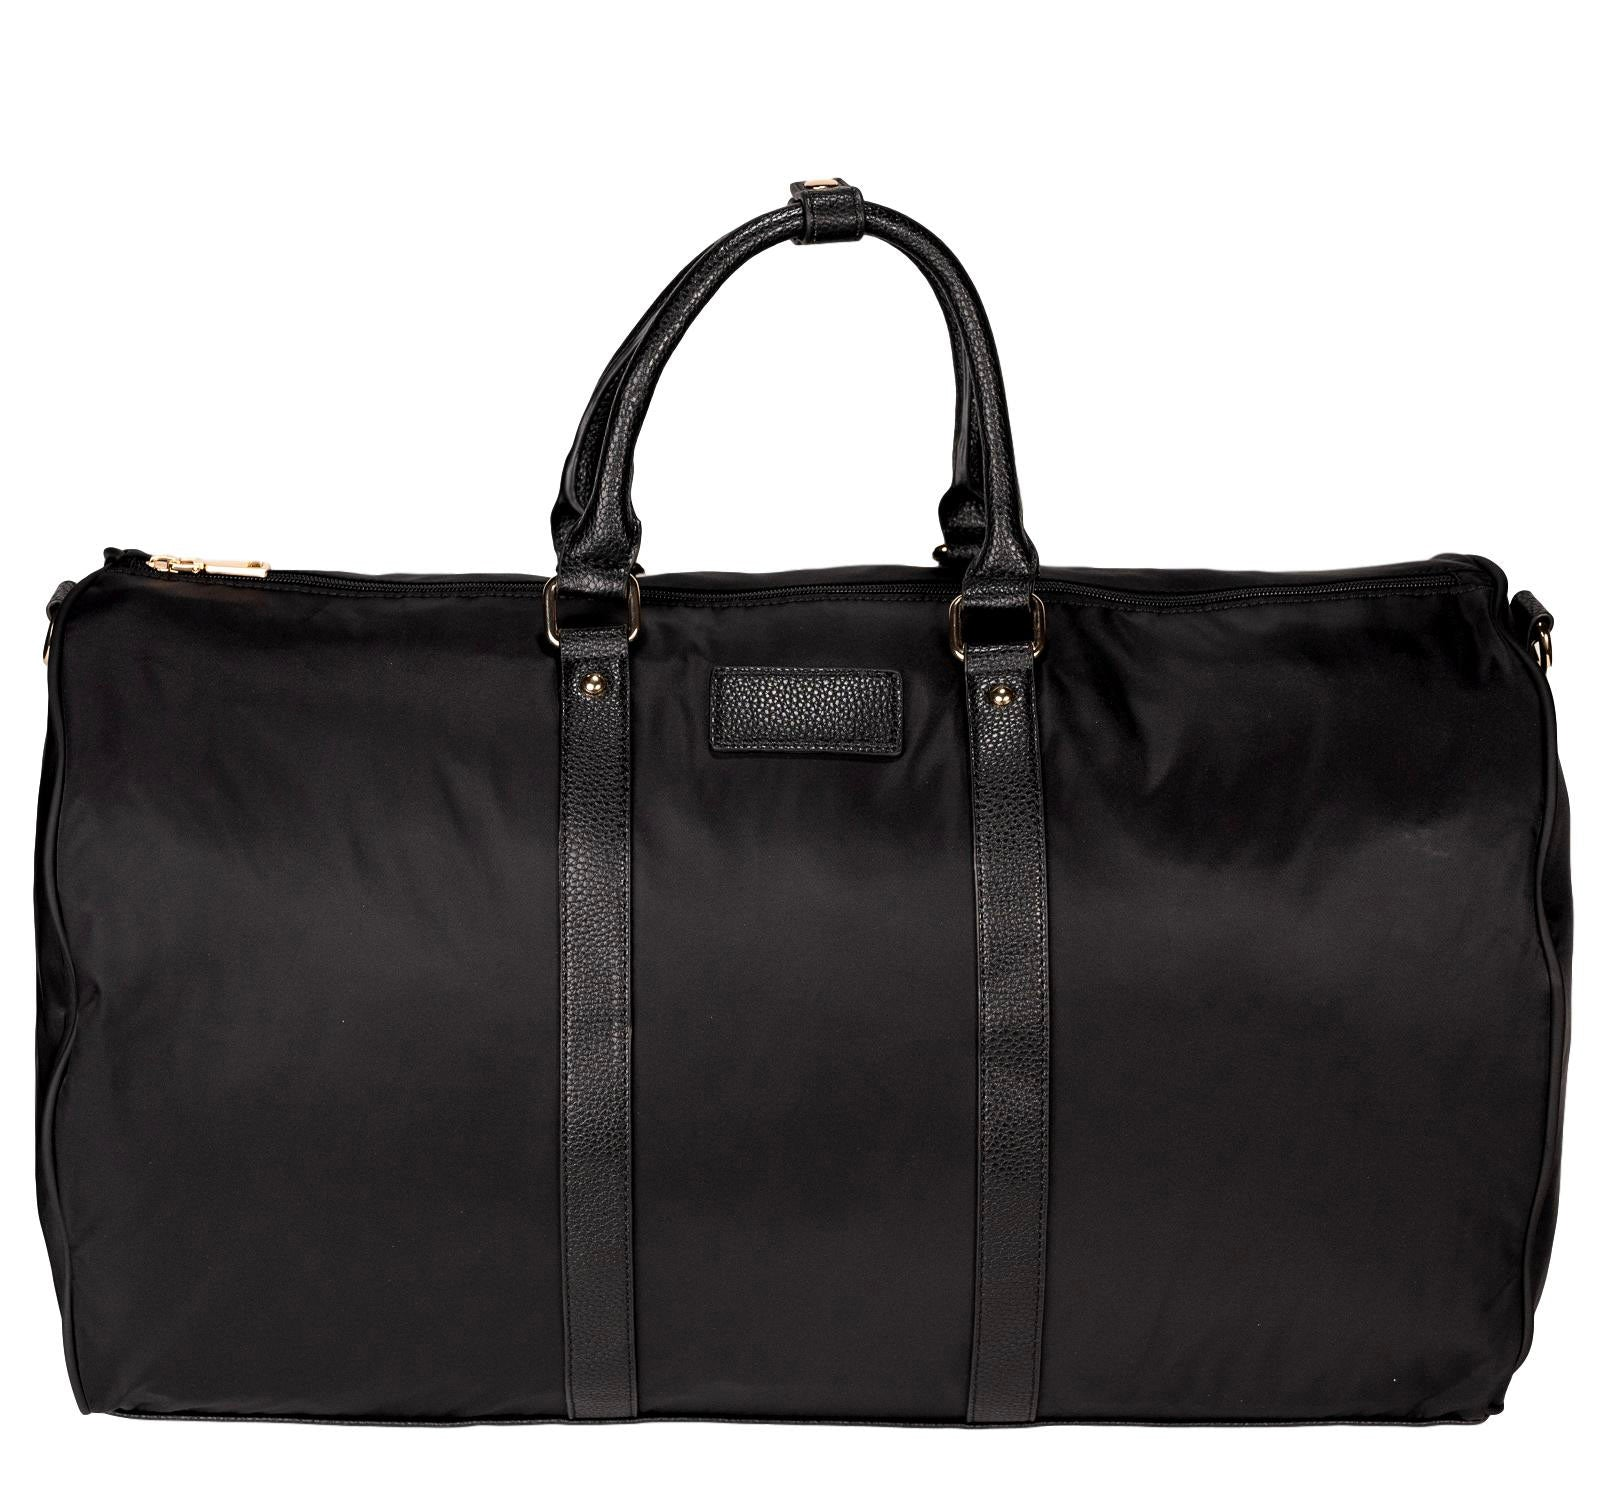 Mon Purse XL Nylon Brooklyn Duffle Bag in Black